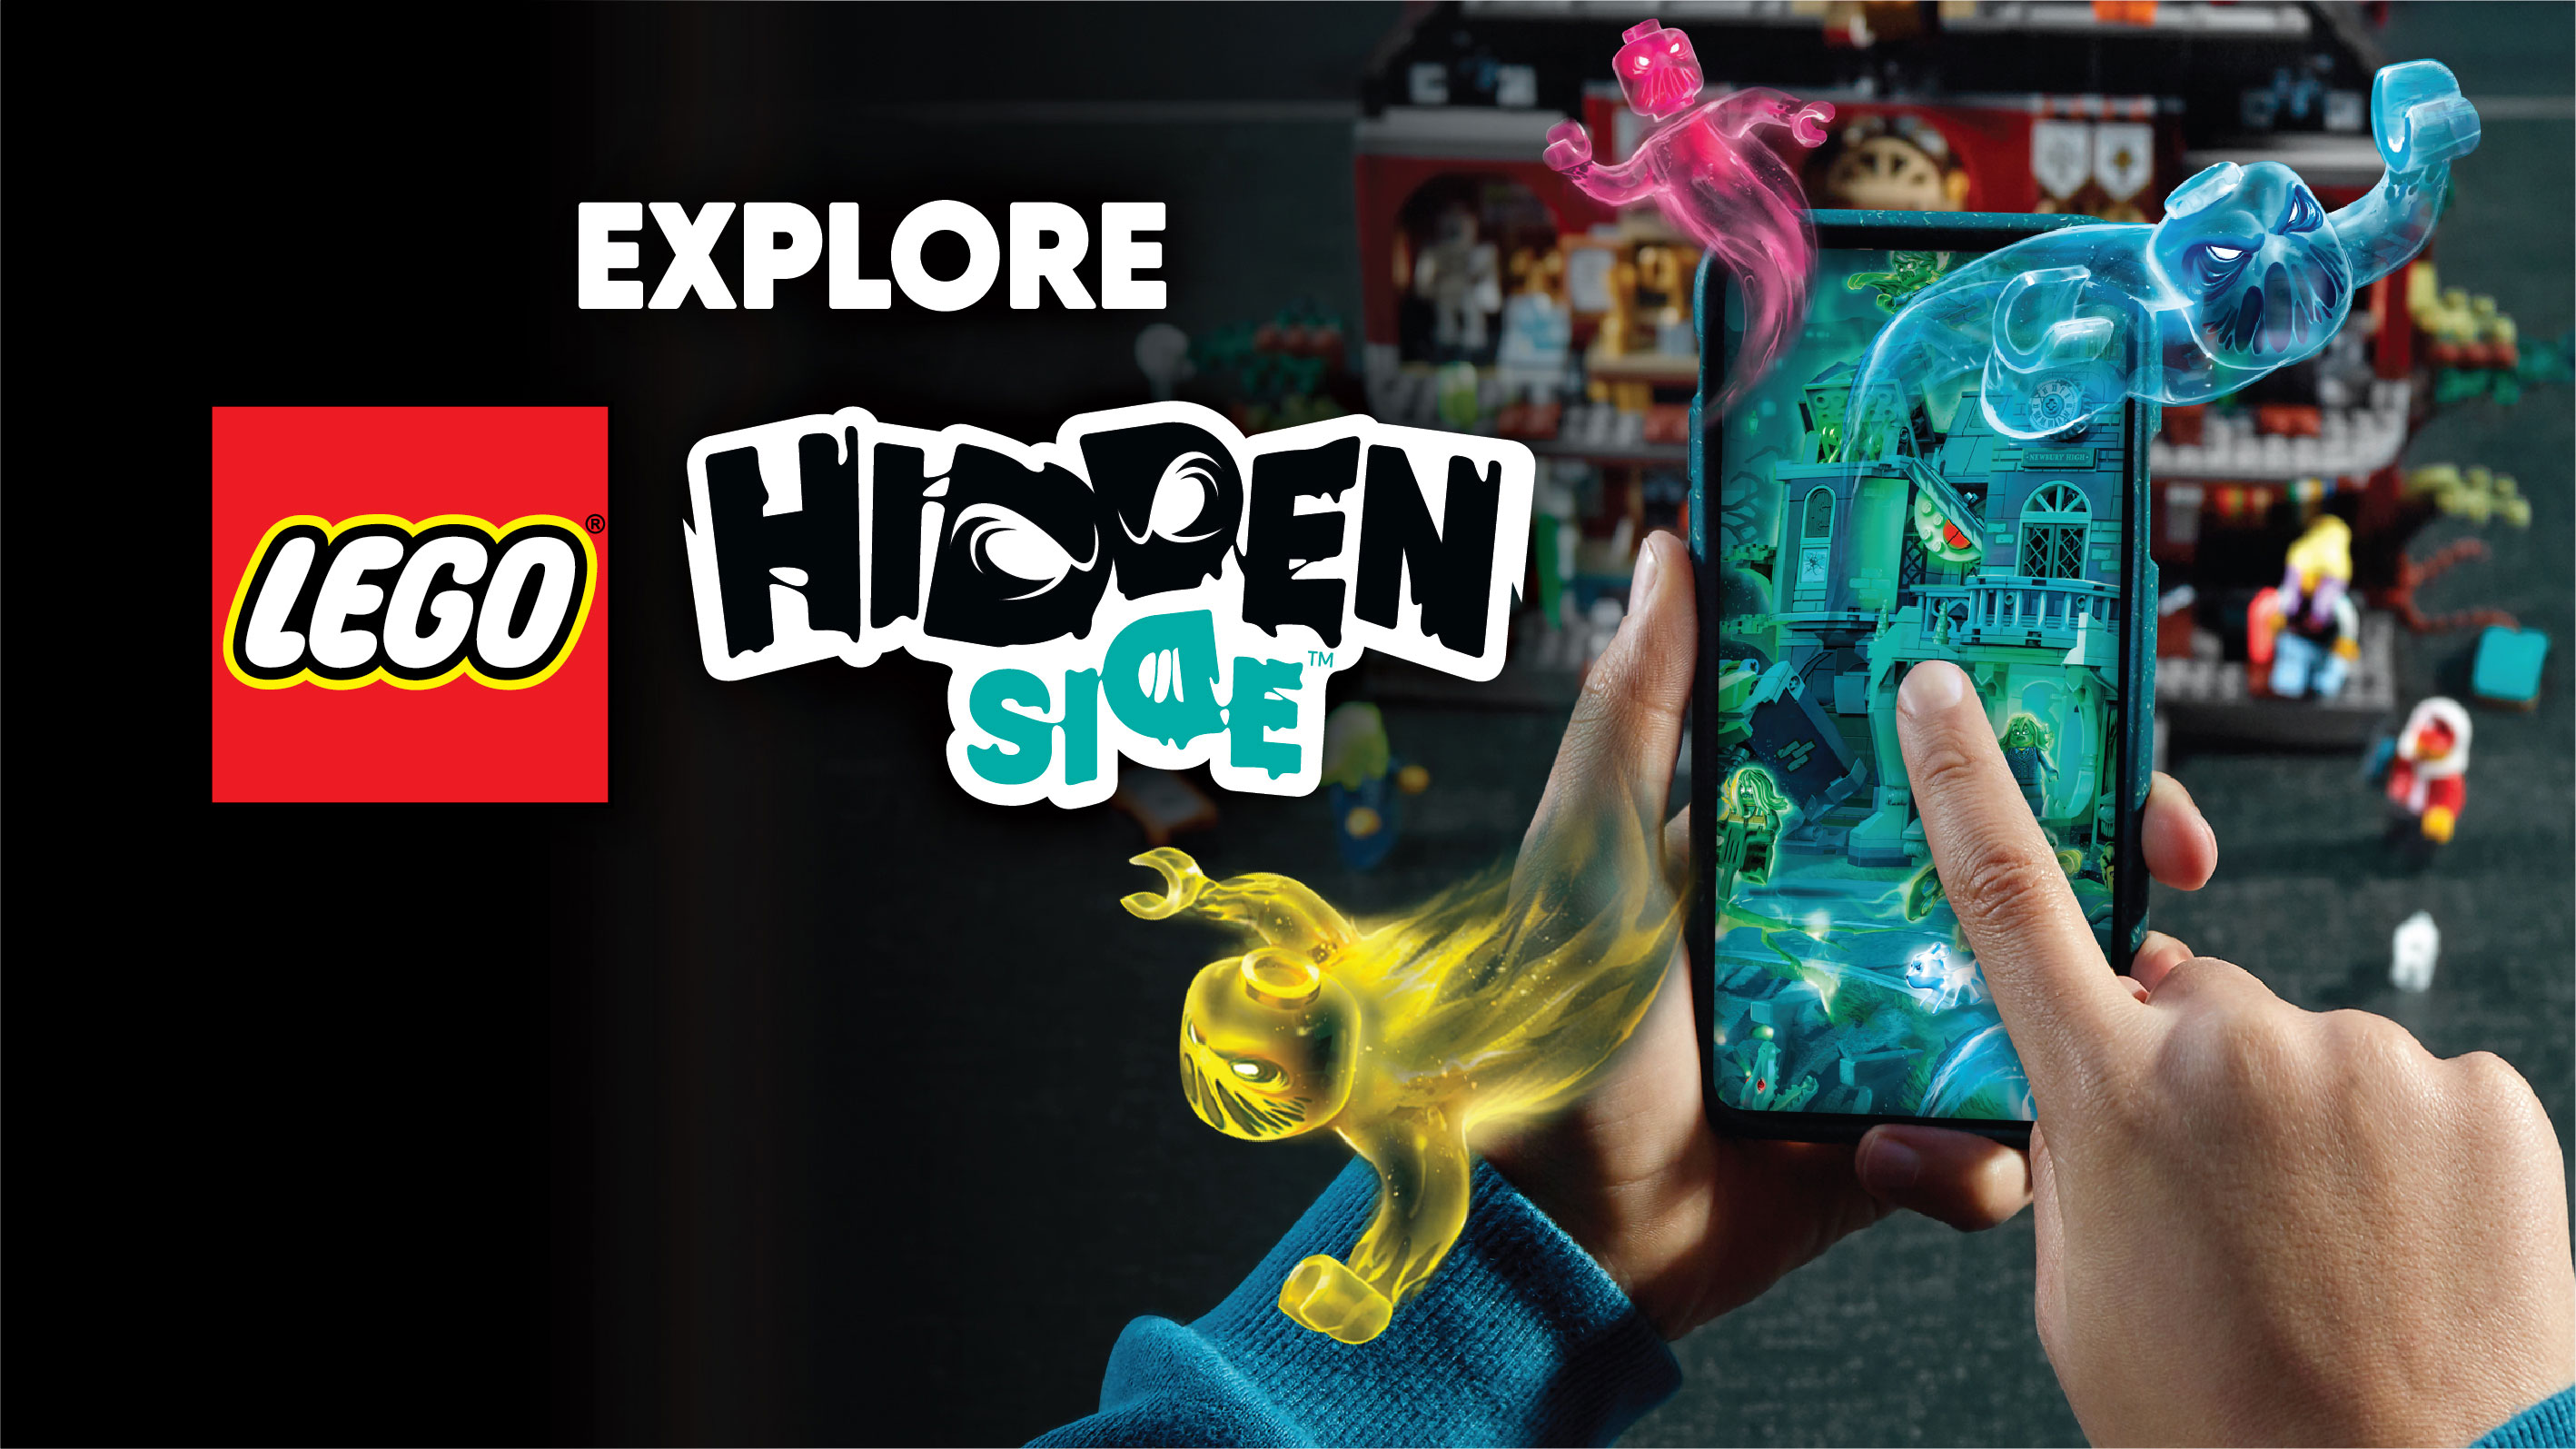 31st LEGO hidden side cover